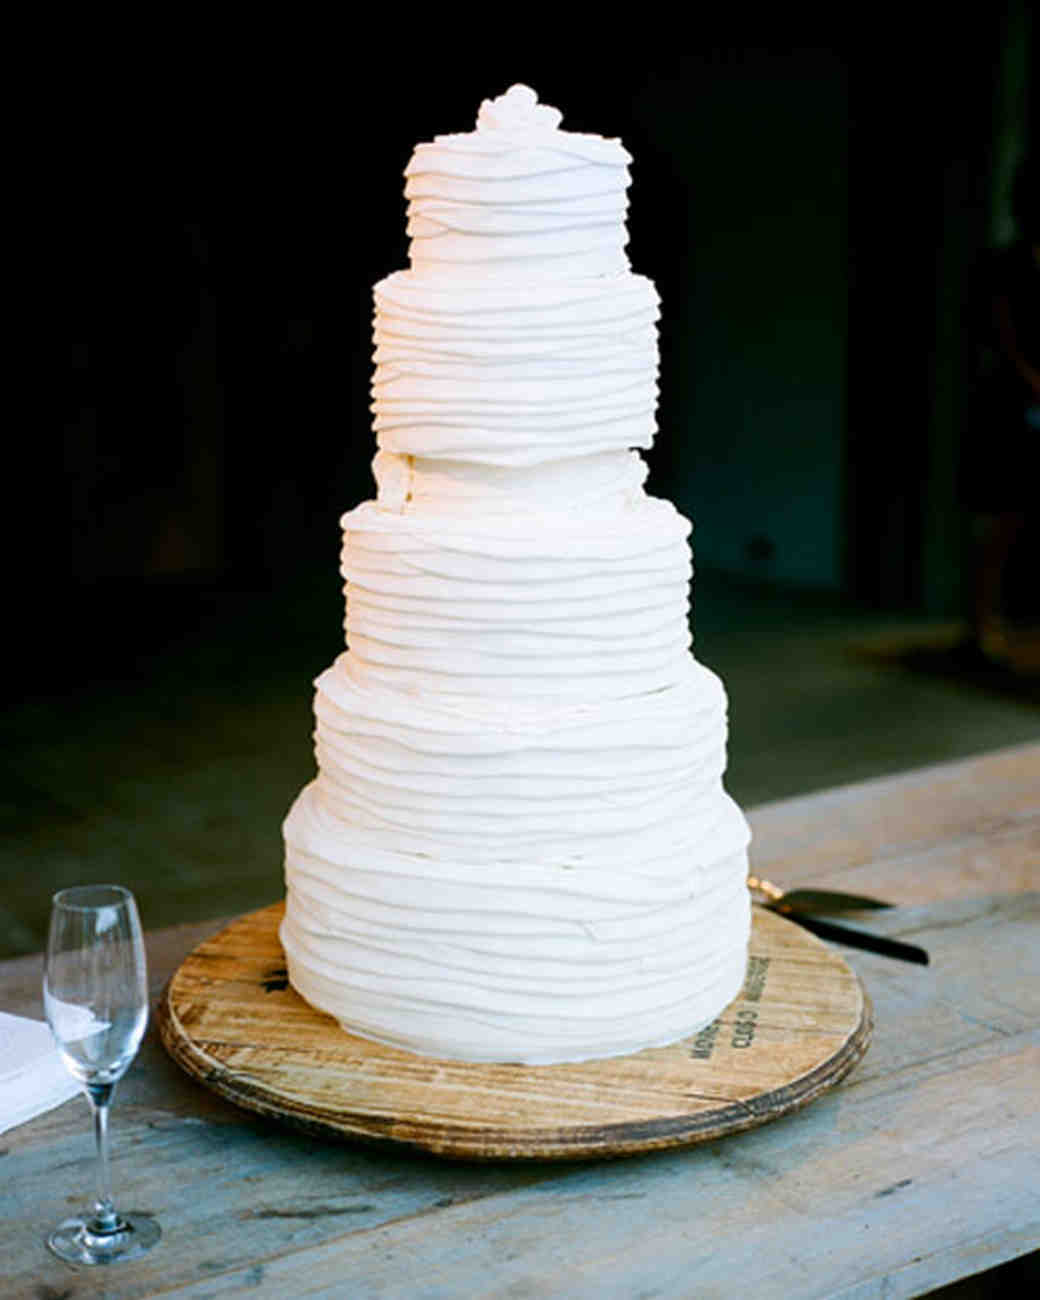 Five-Tiered Rustic White Wedding Cake with Lined Icing